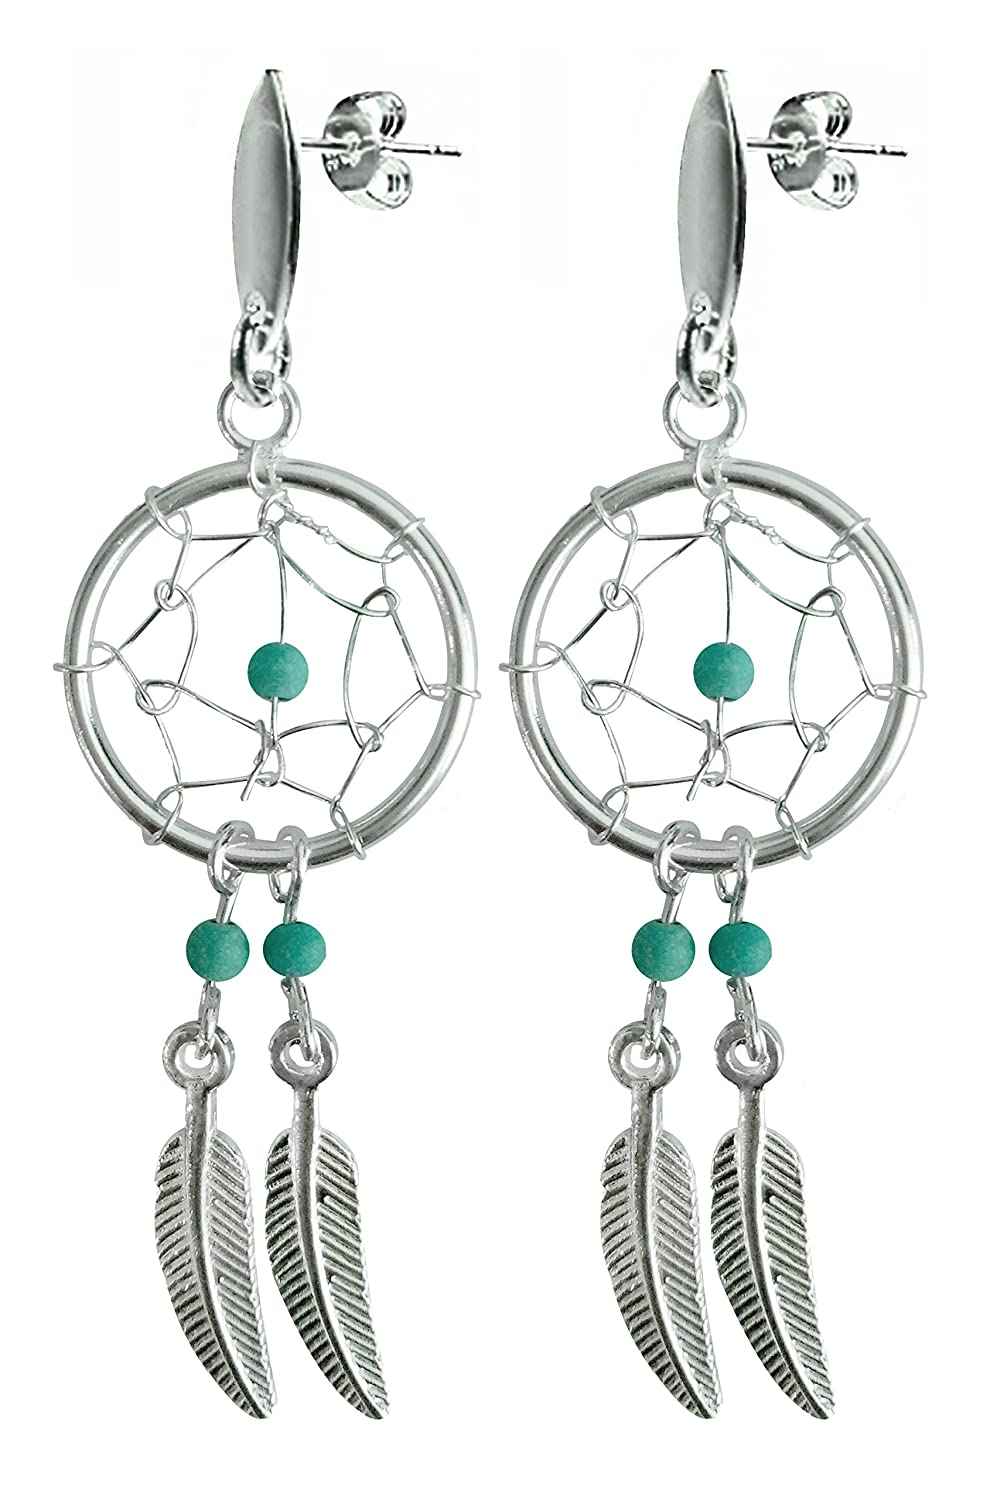 Silver Dreamcatcher stud earrings with genuine stone